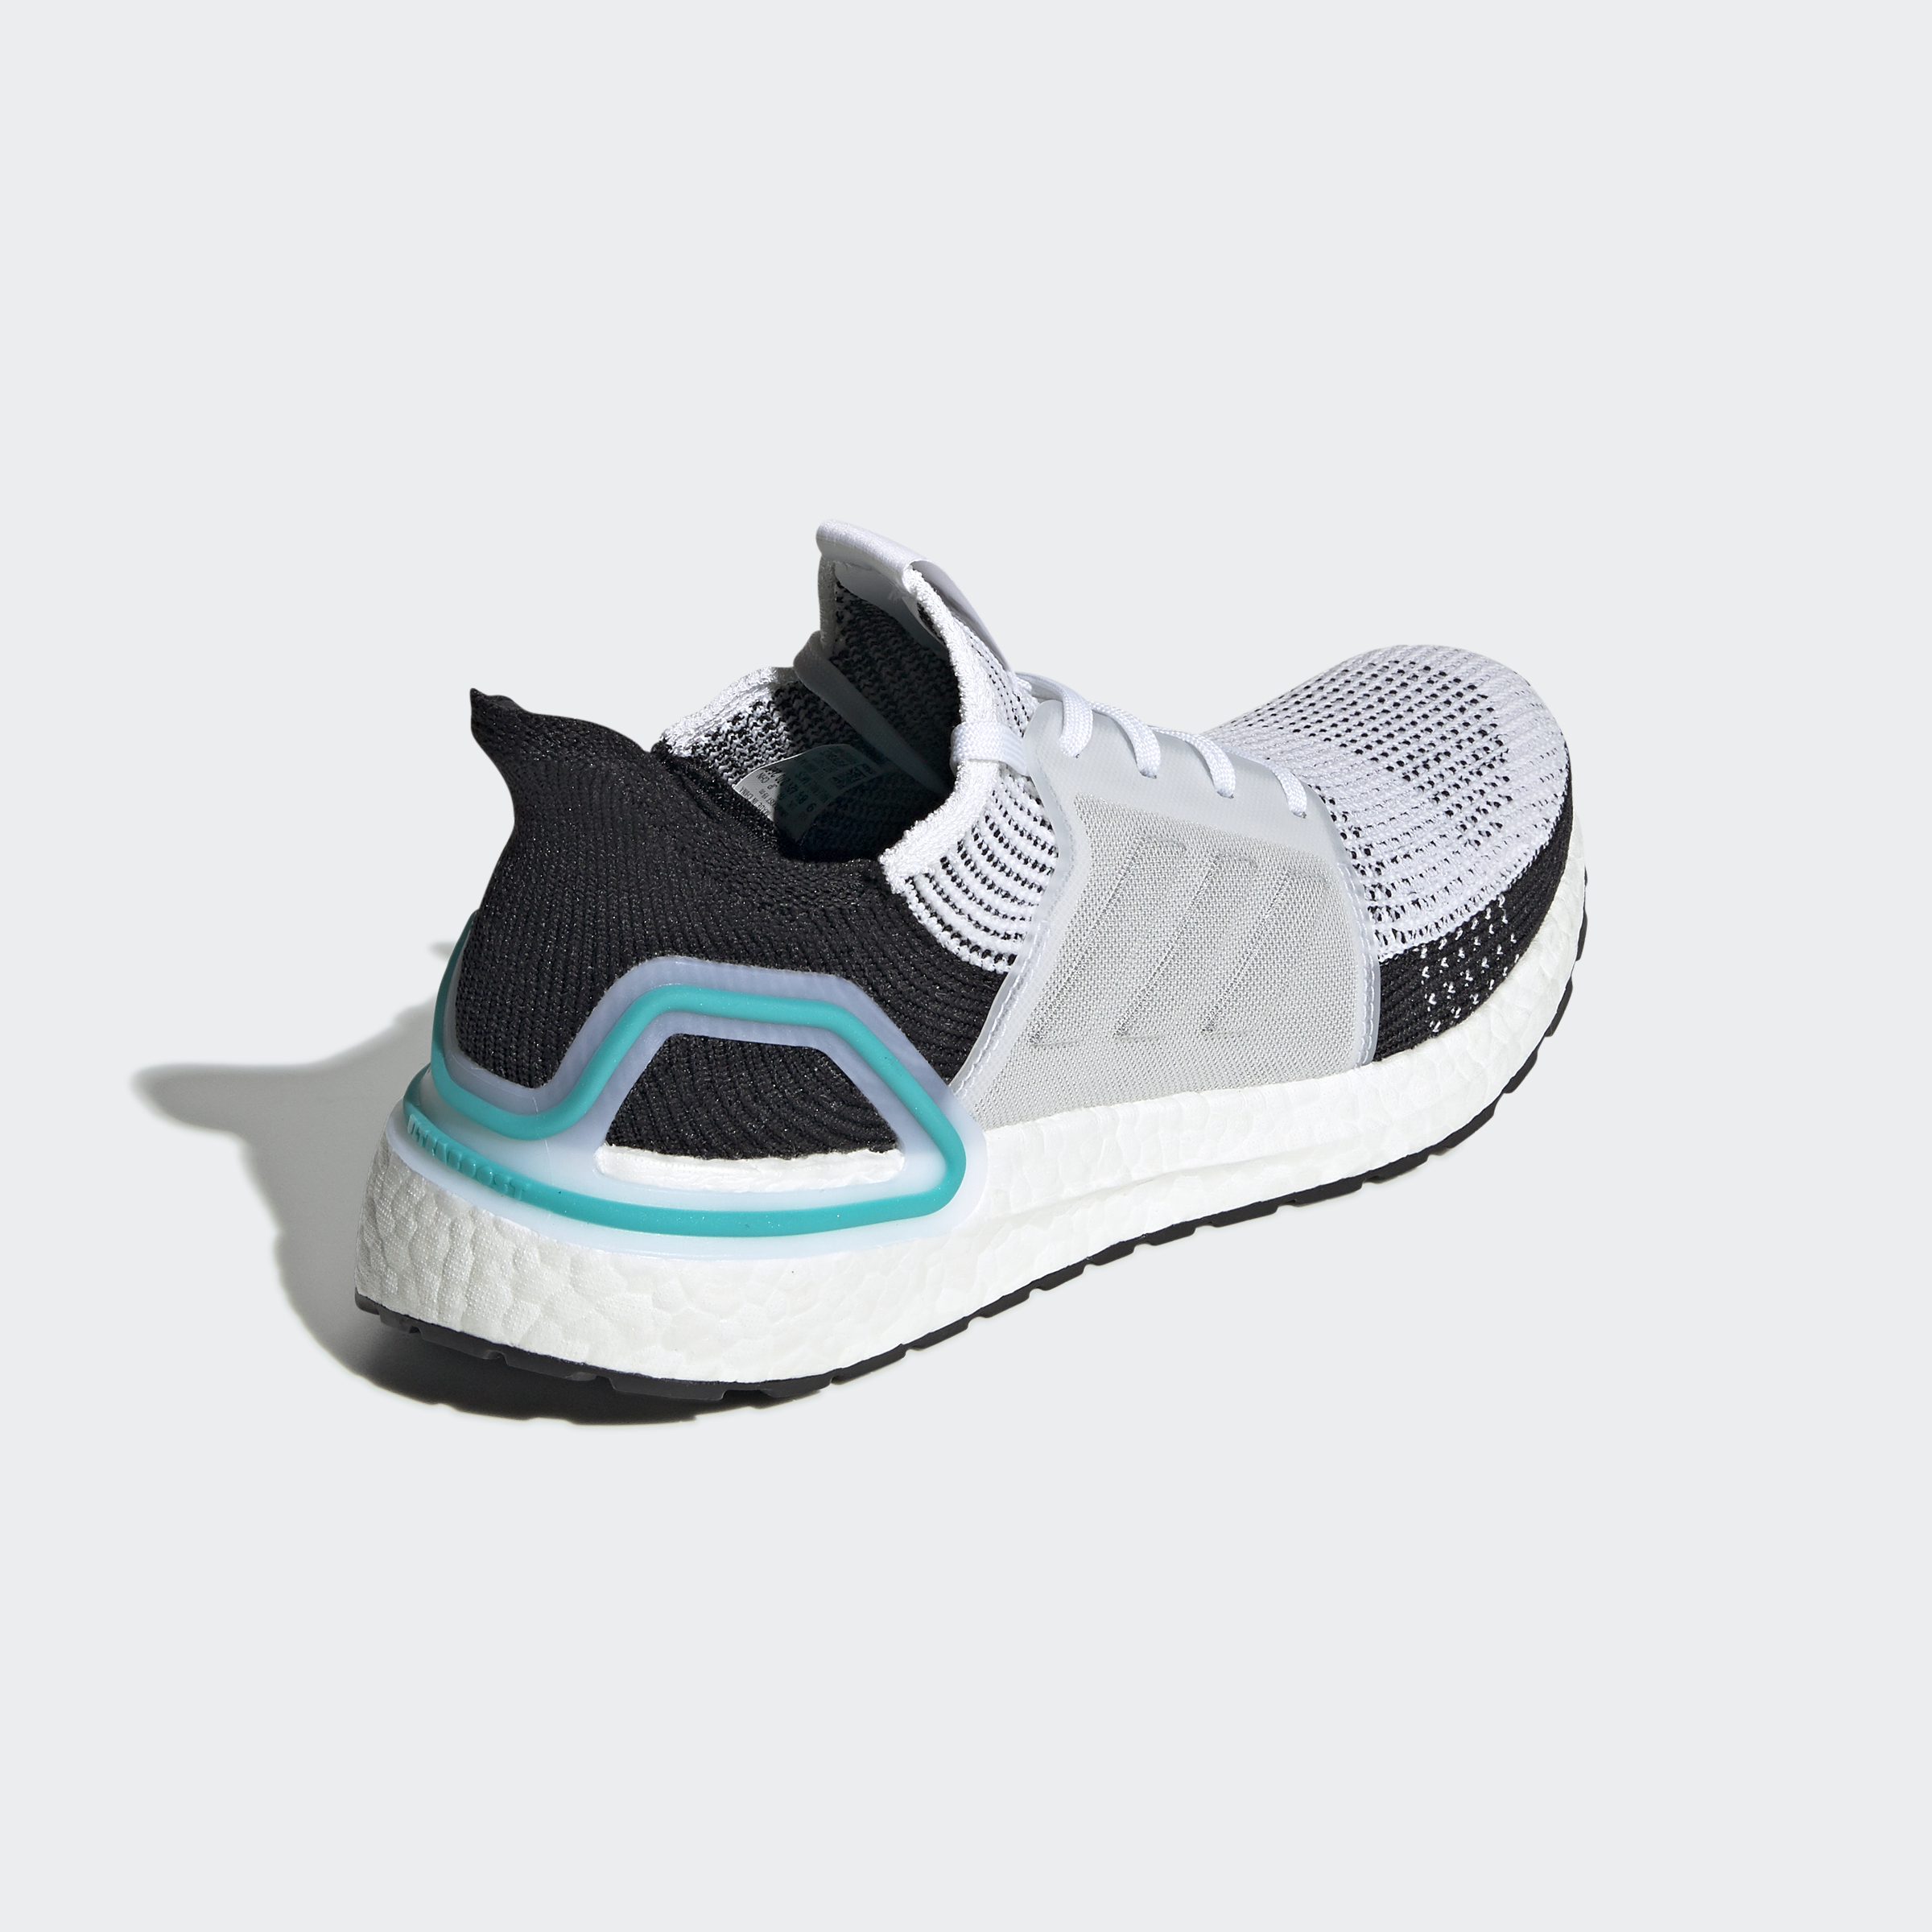 adidas-Ultraboost-19-Shoes-Athletic-amp-Sneakers thumbnail 144